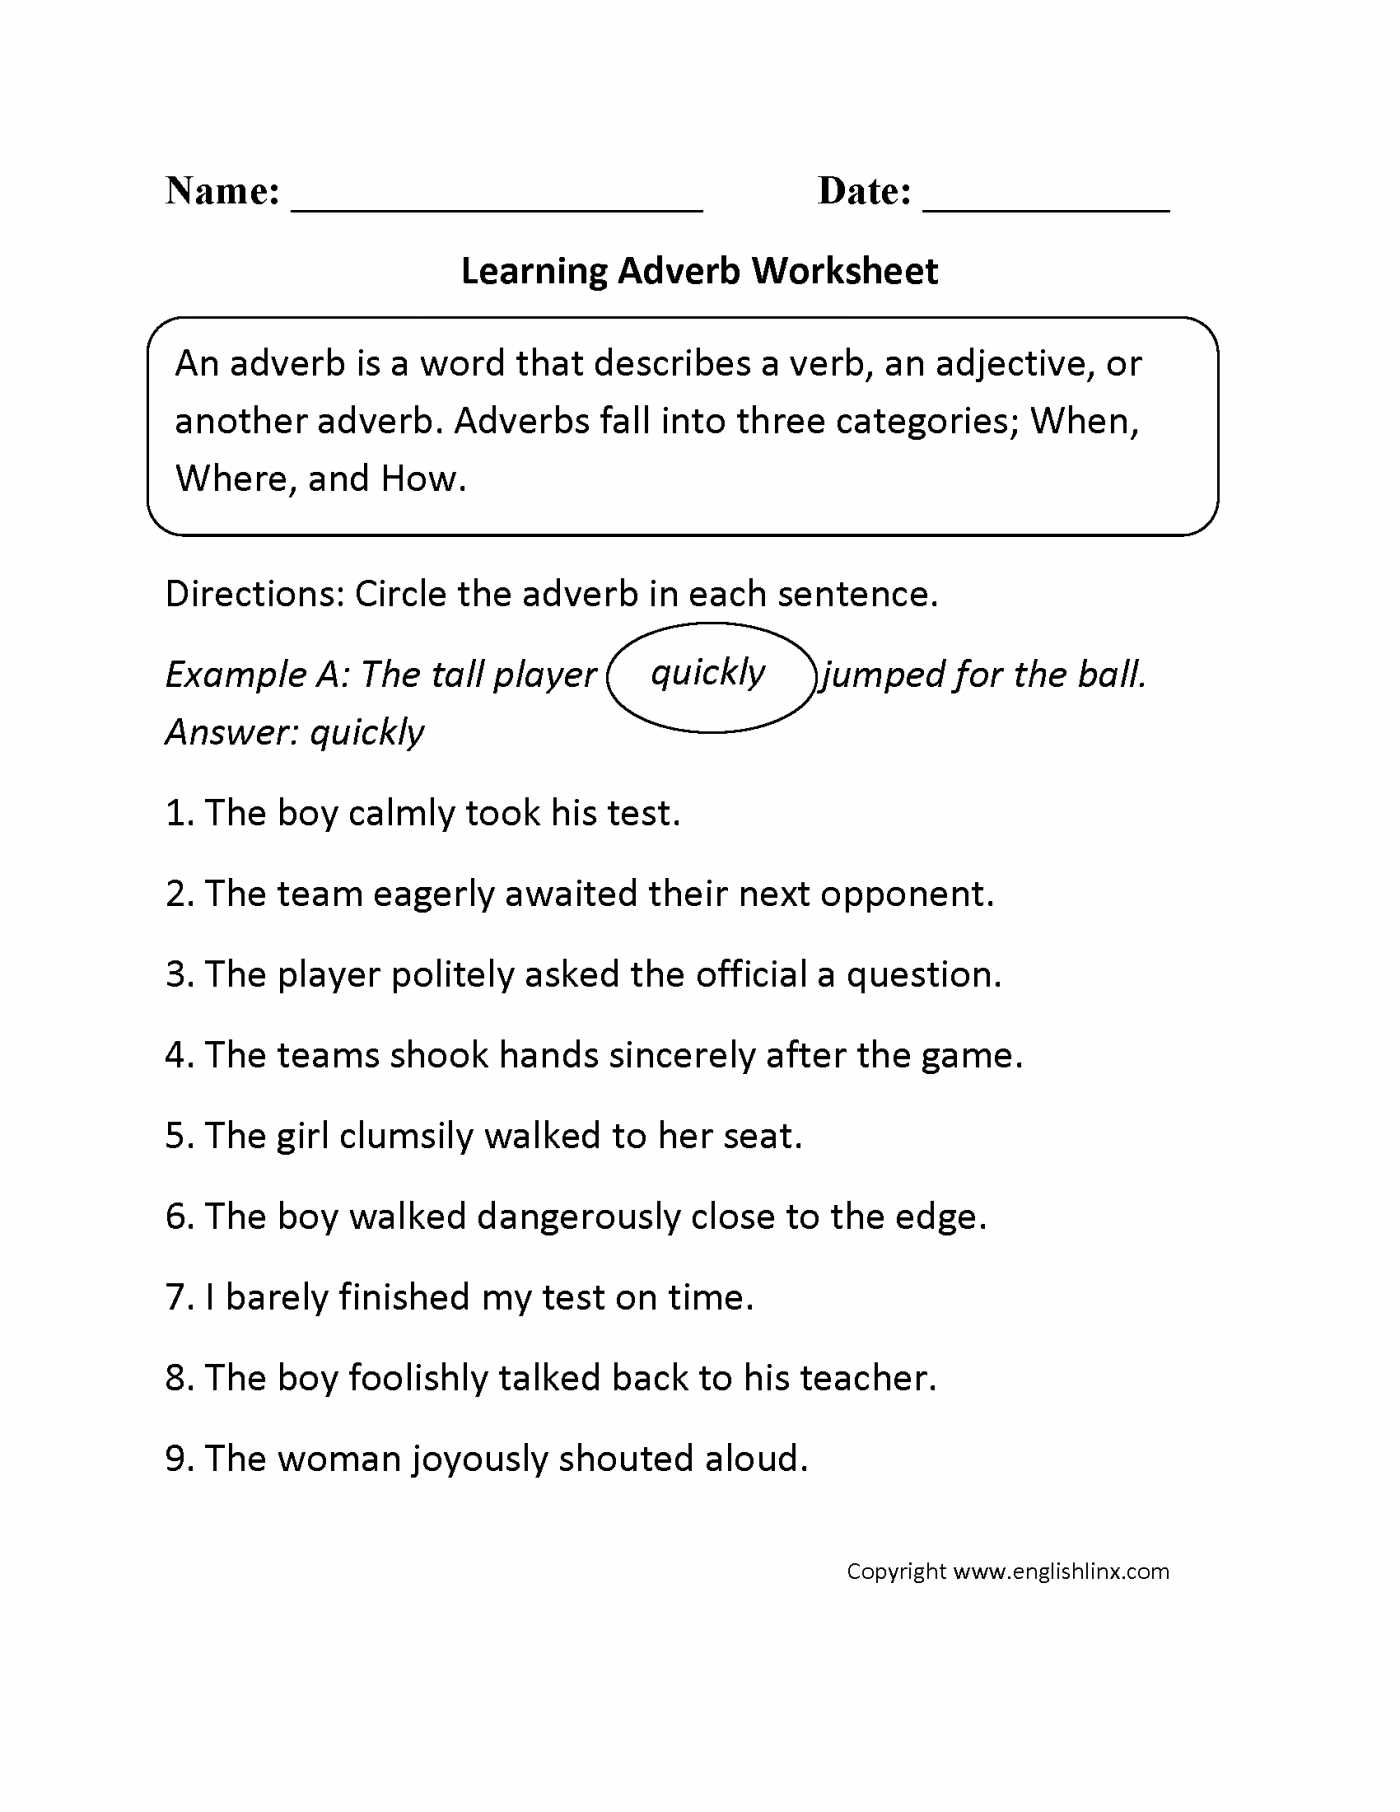 Possessive Adjectives Worksheet Along with Adverbs Frequency Crossword Puzzle Pdf Adverb Warmers Coolers